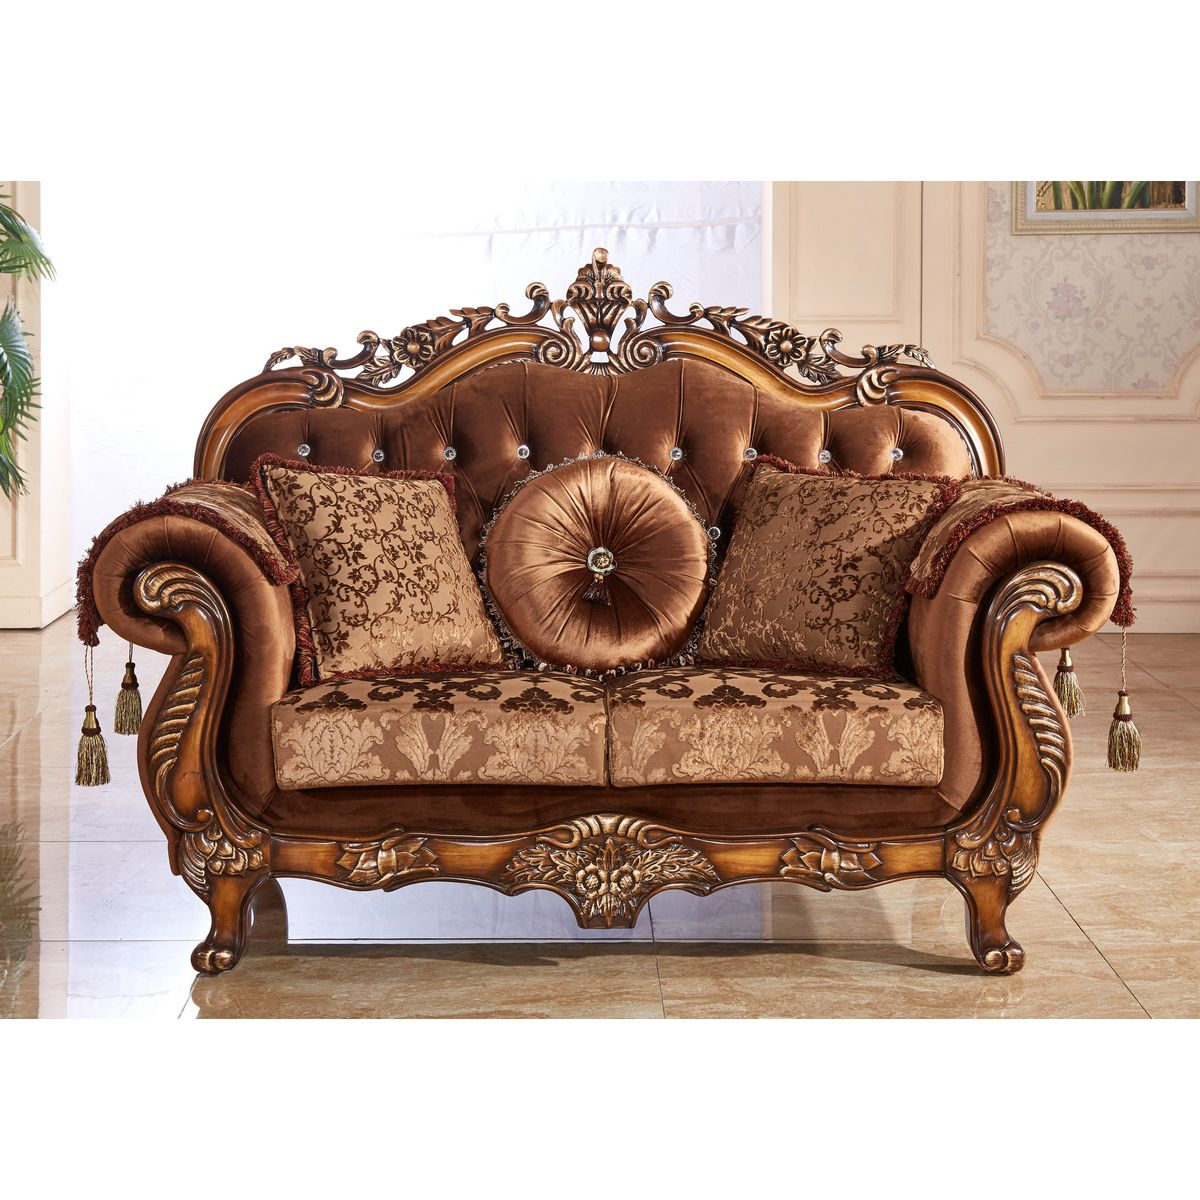 Meridian Furniture 692 L Napoli Loveseat In Crystal Tufted Fabric On Cherry  Frame W/ Ornate Carving